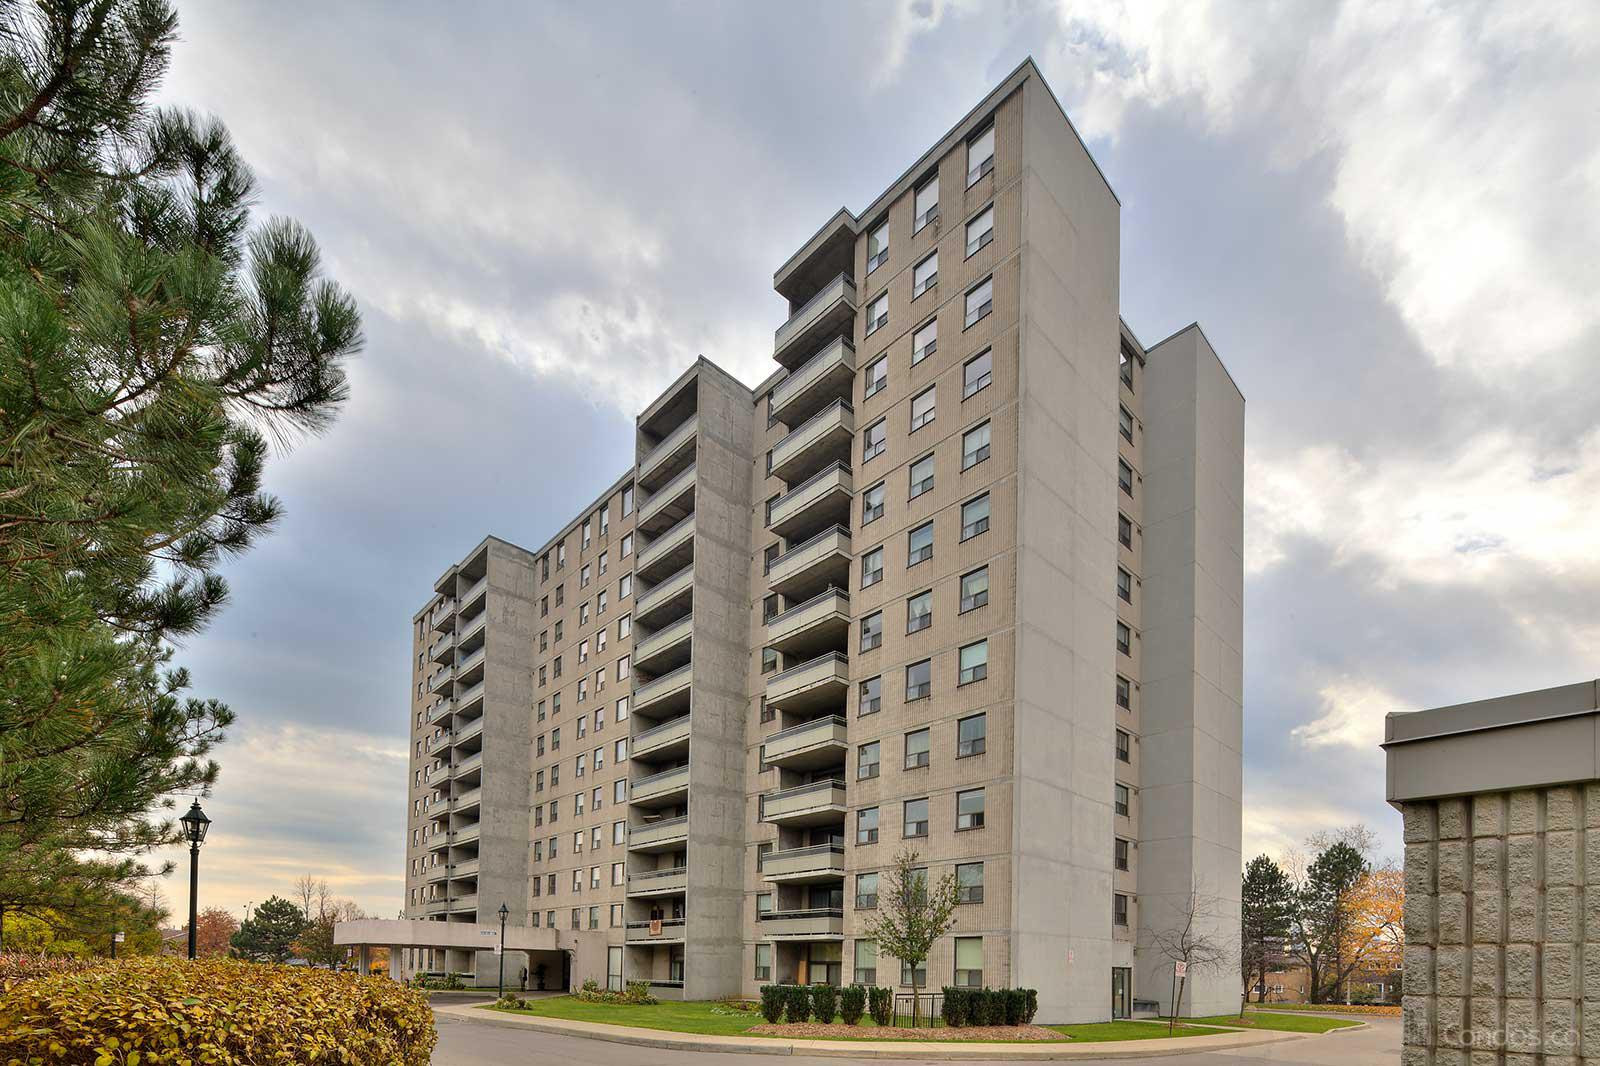 Rathburn Towers at 355 Rathburn Rd E, Mississauga 1